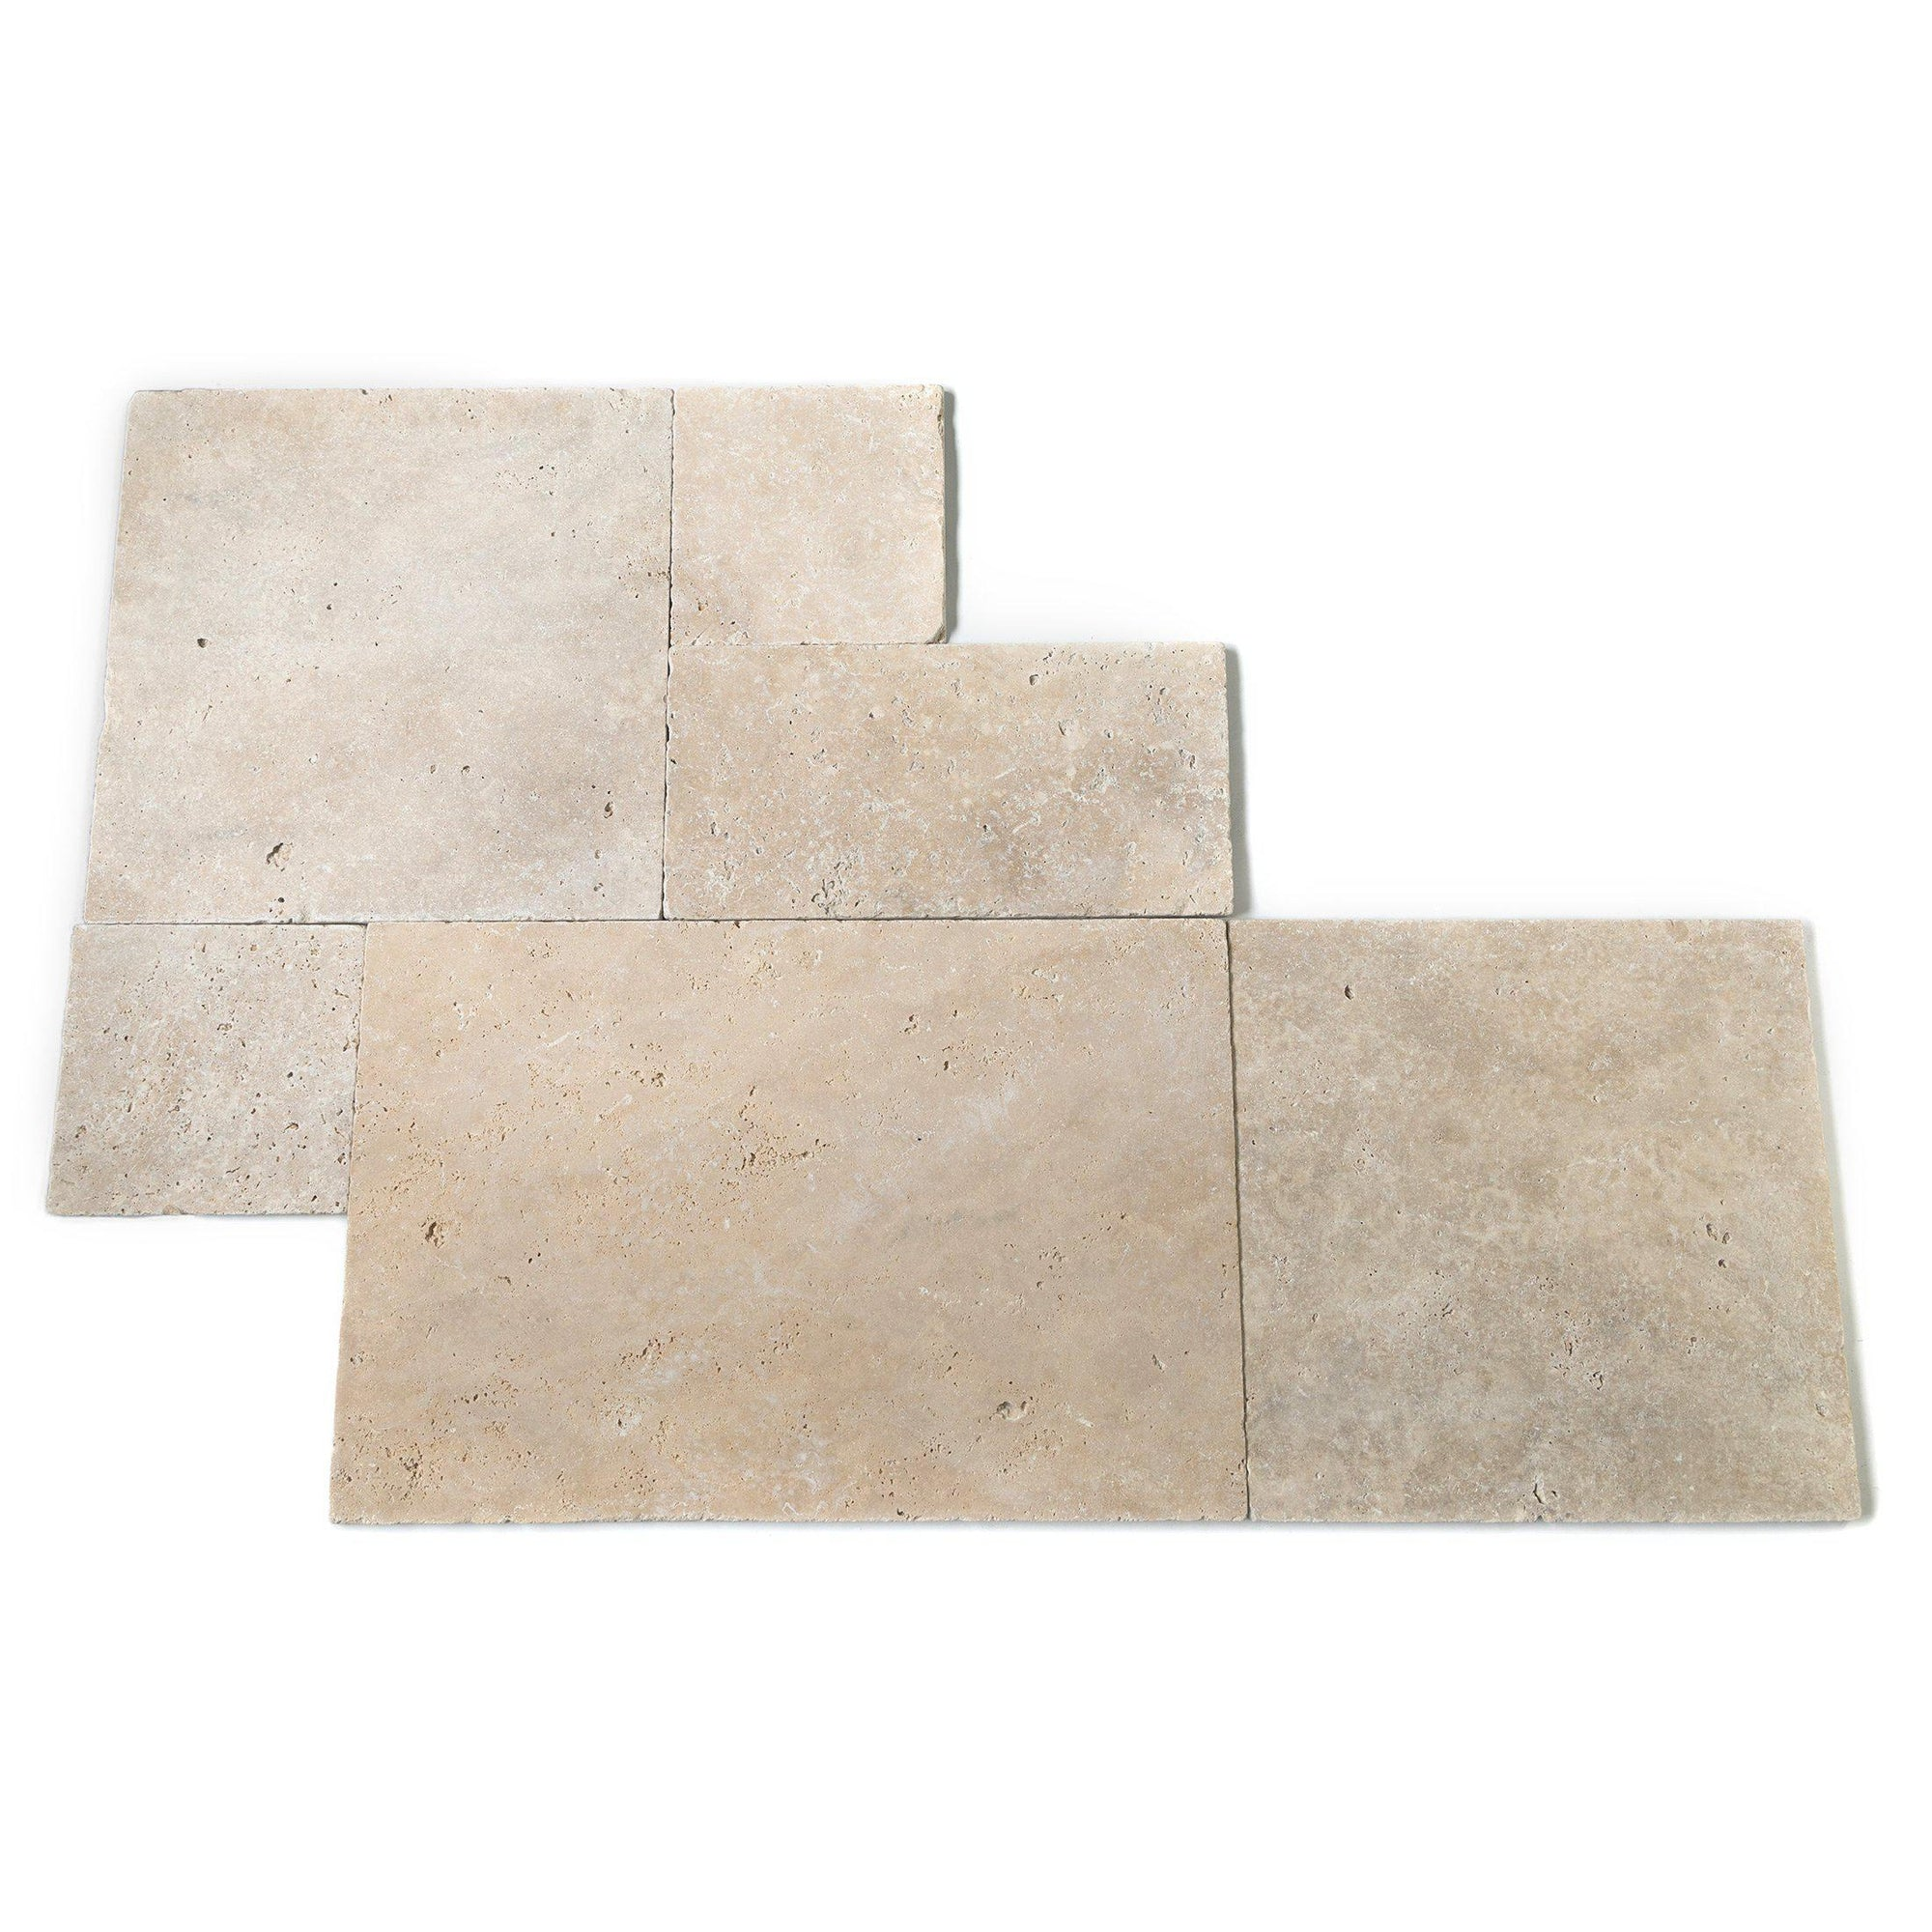 Classic Cream Tumbled French Set Travertine Tile